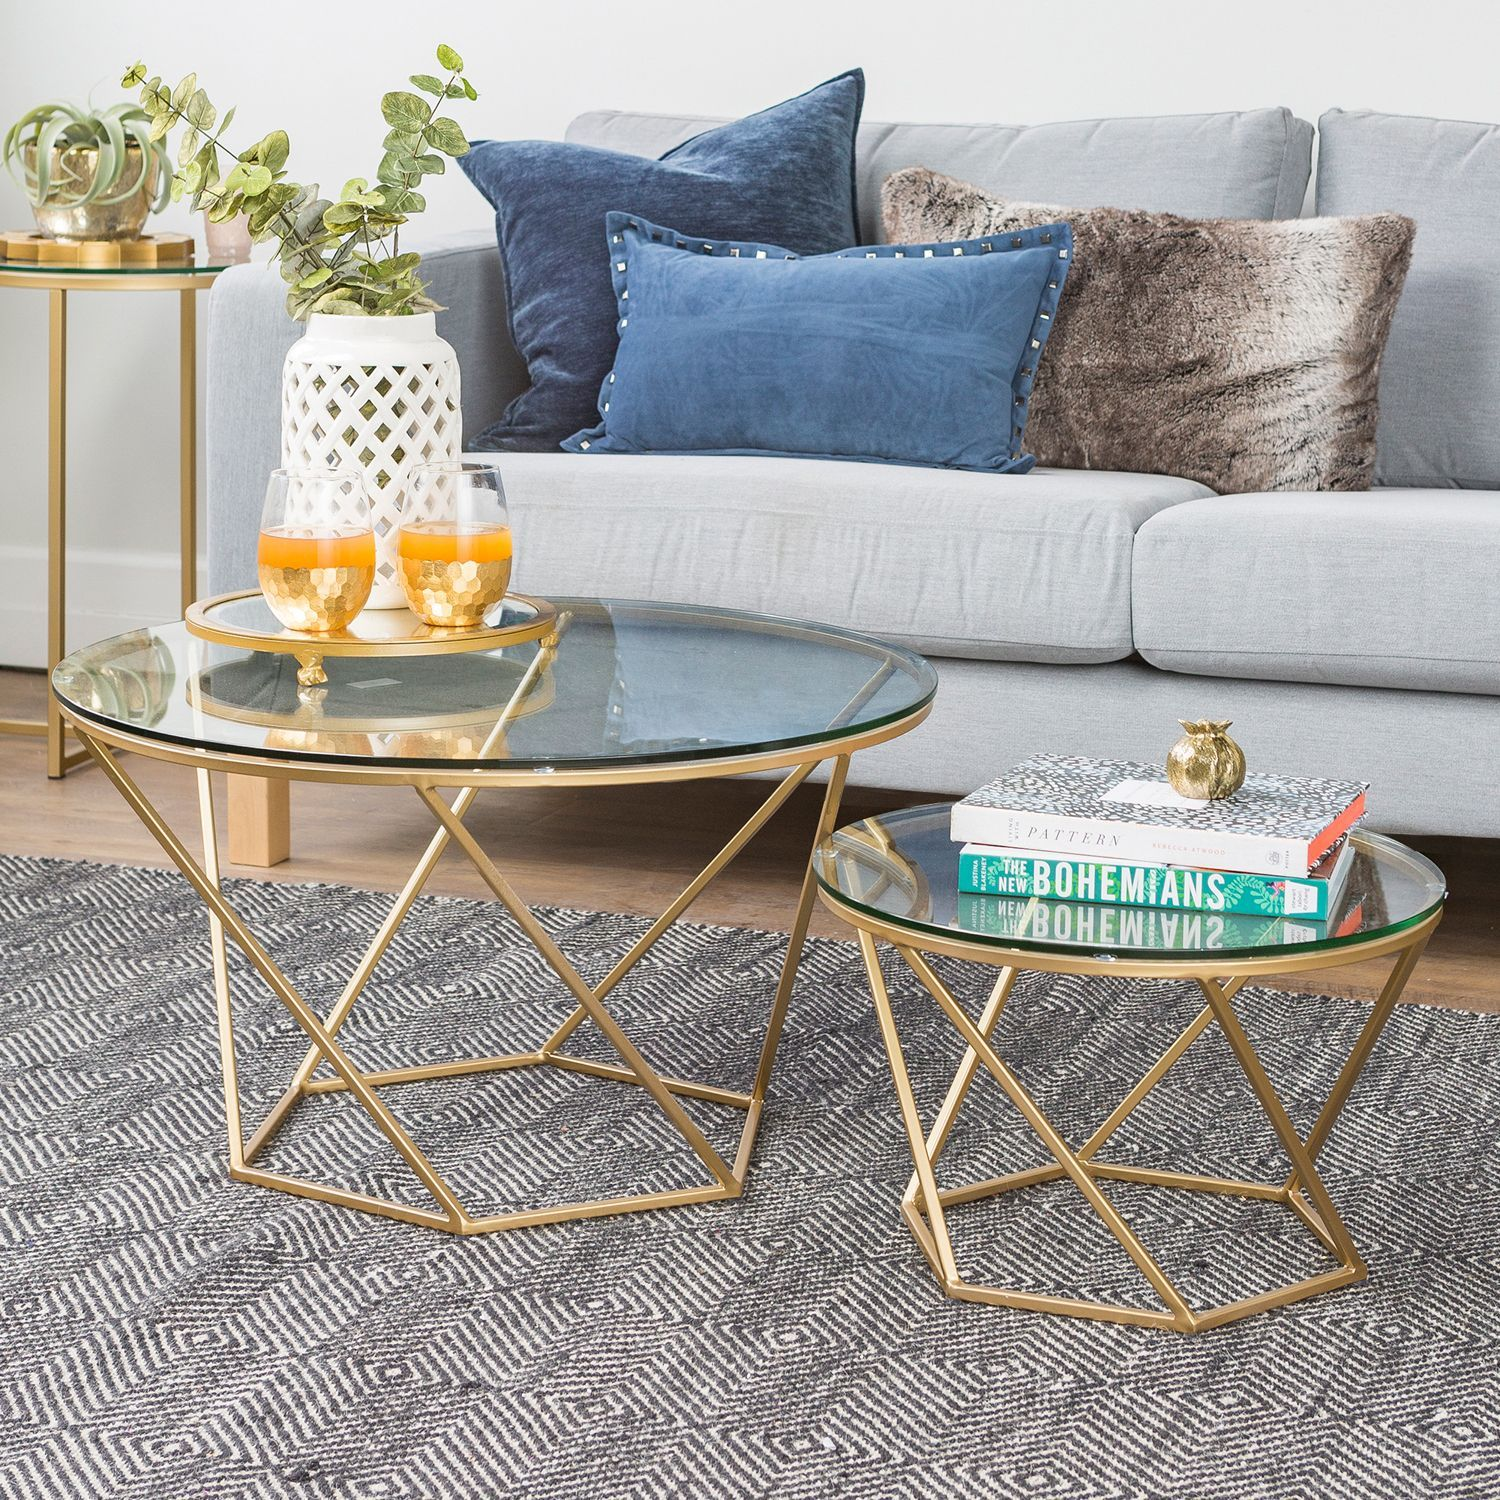 19+ Wood and gold coffee table round trends